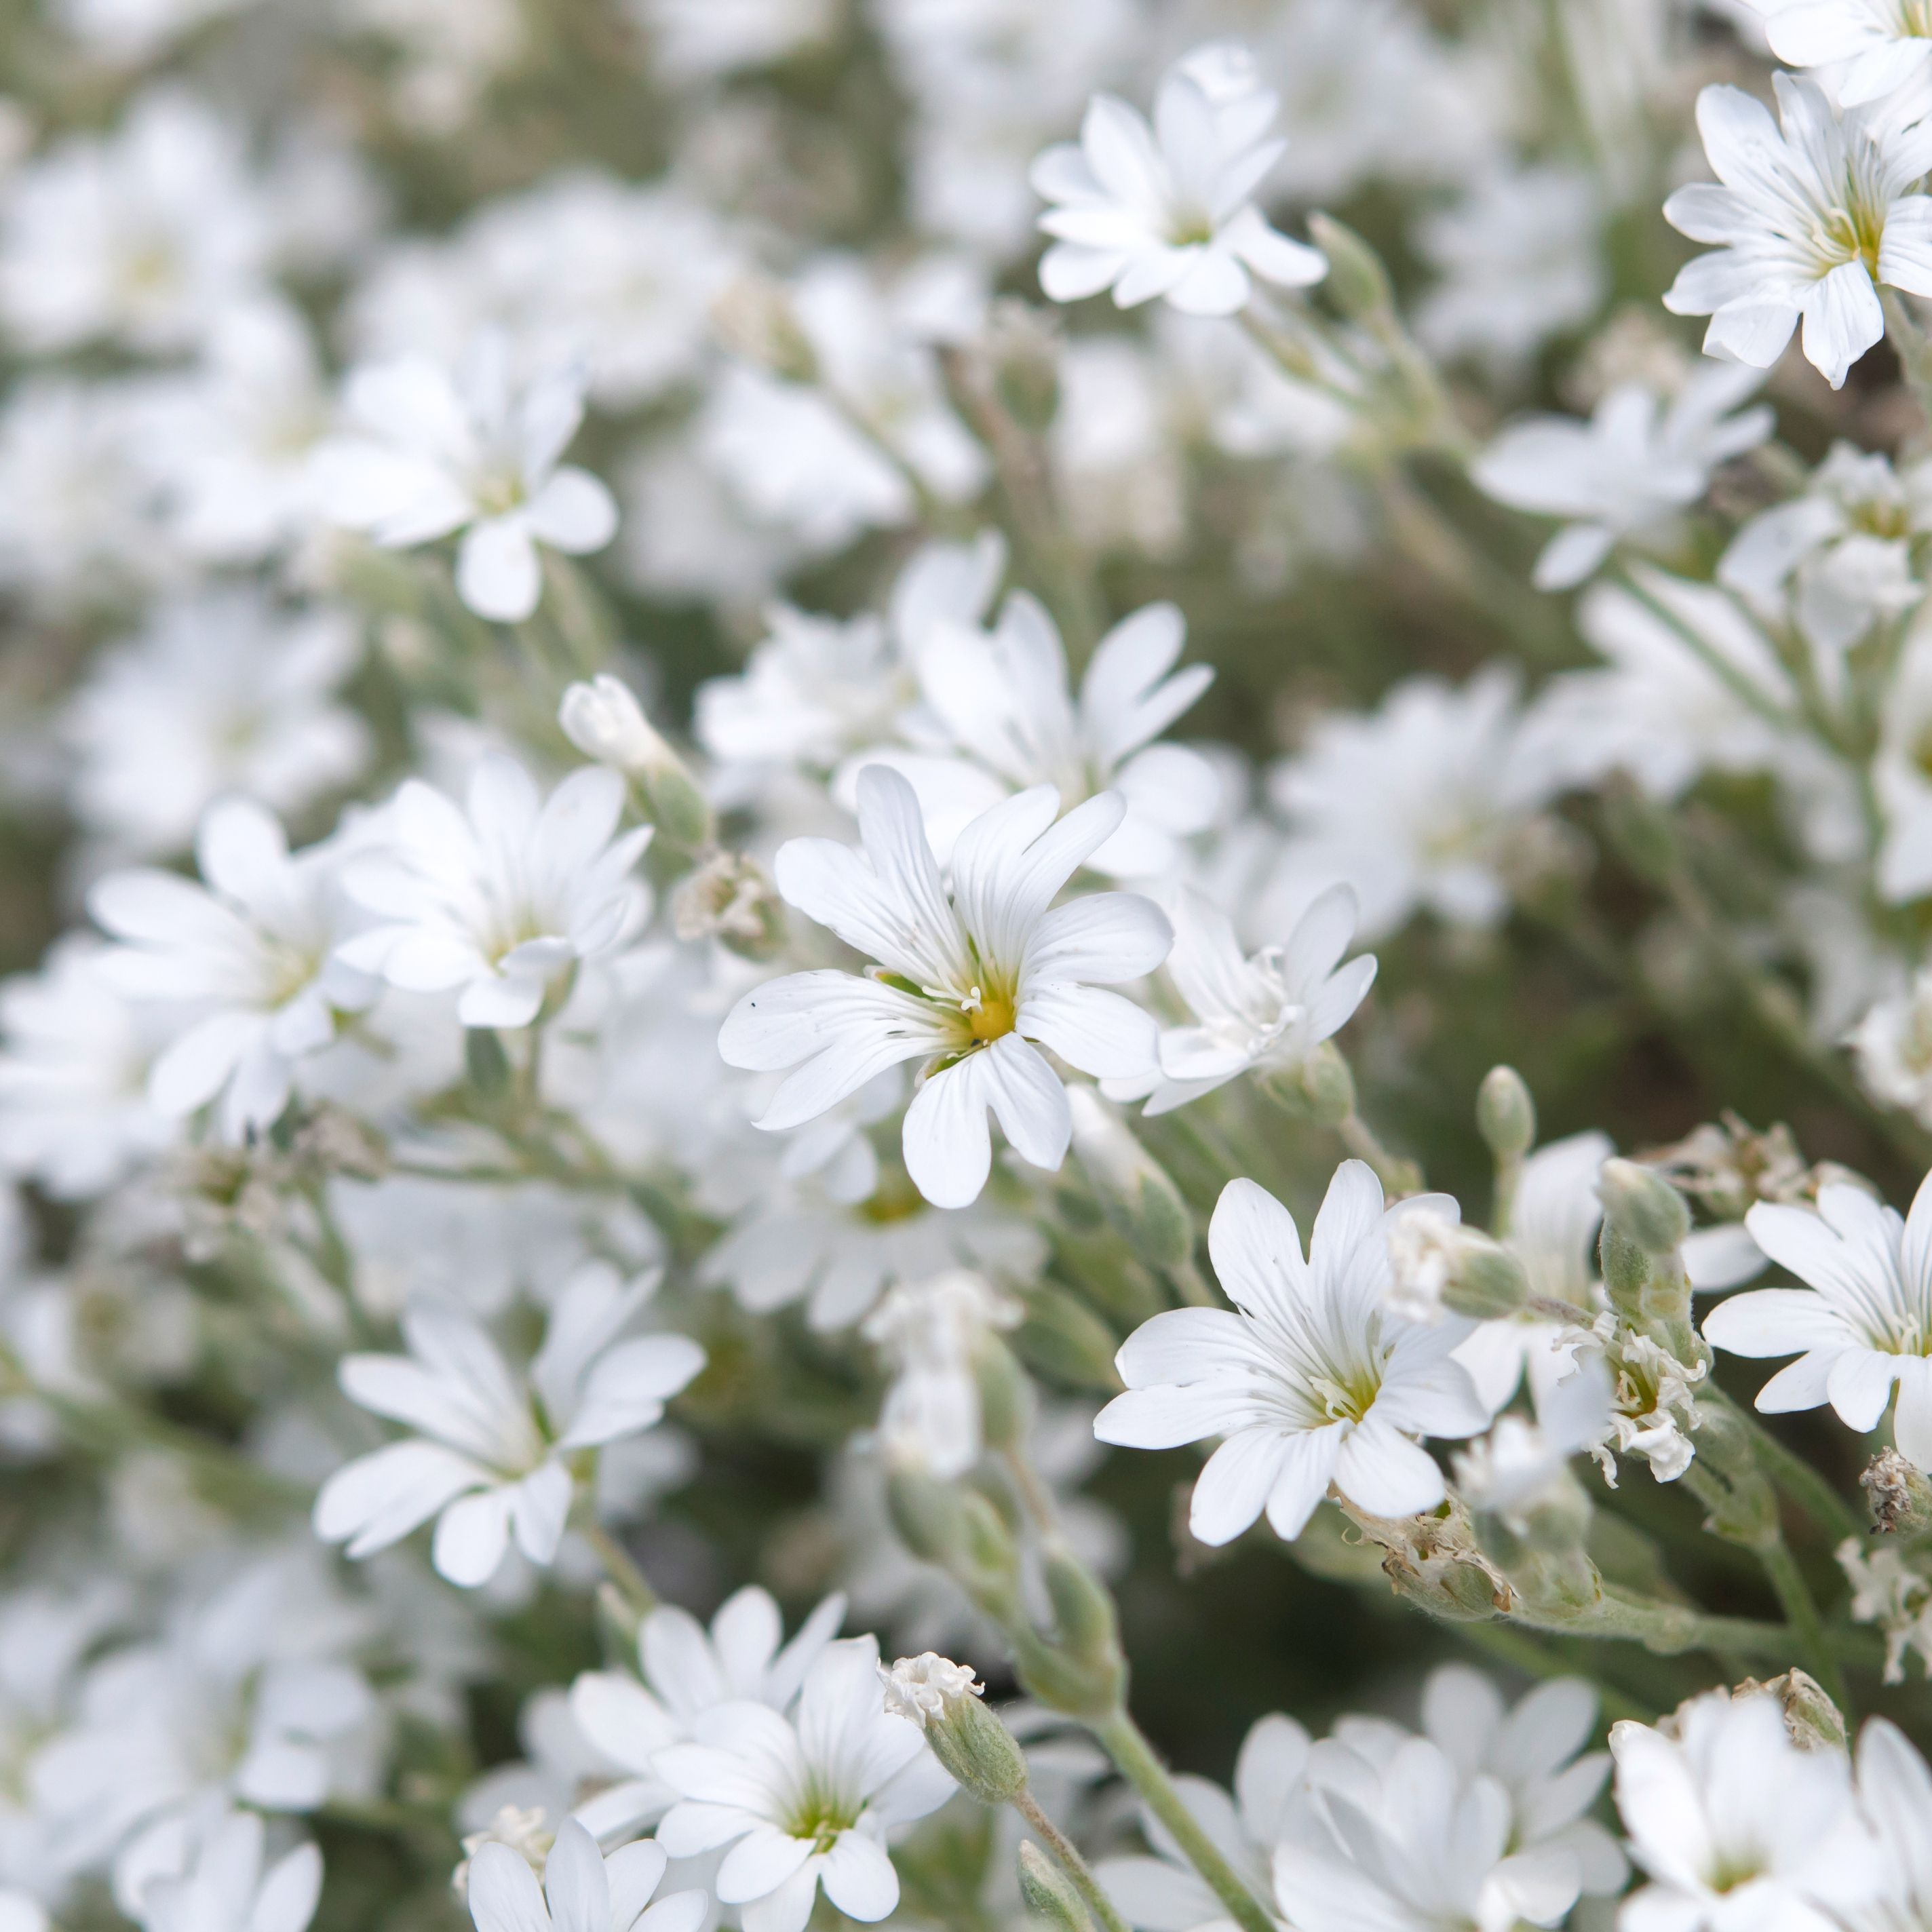 Snow-In-Summer: Plant Care